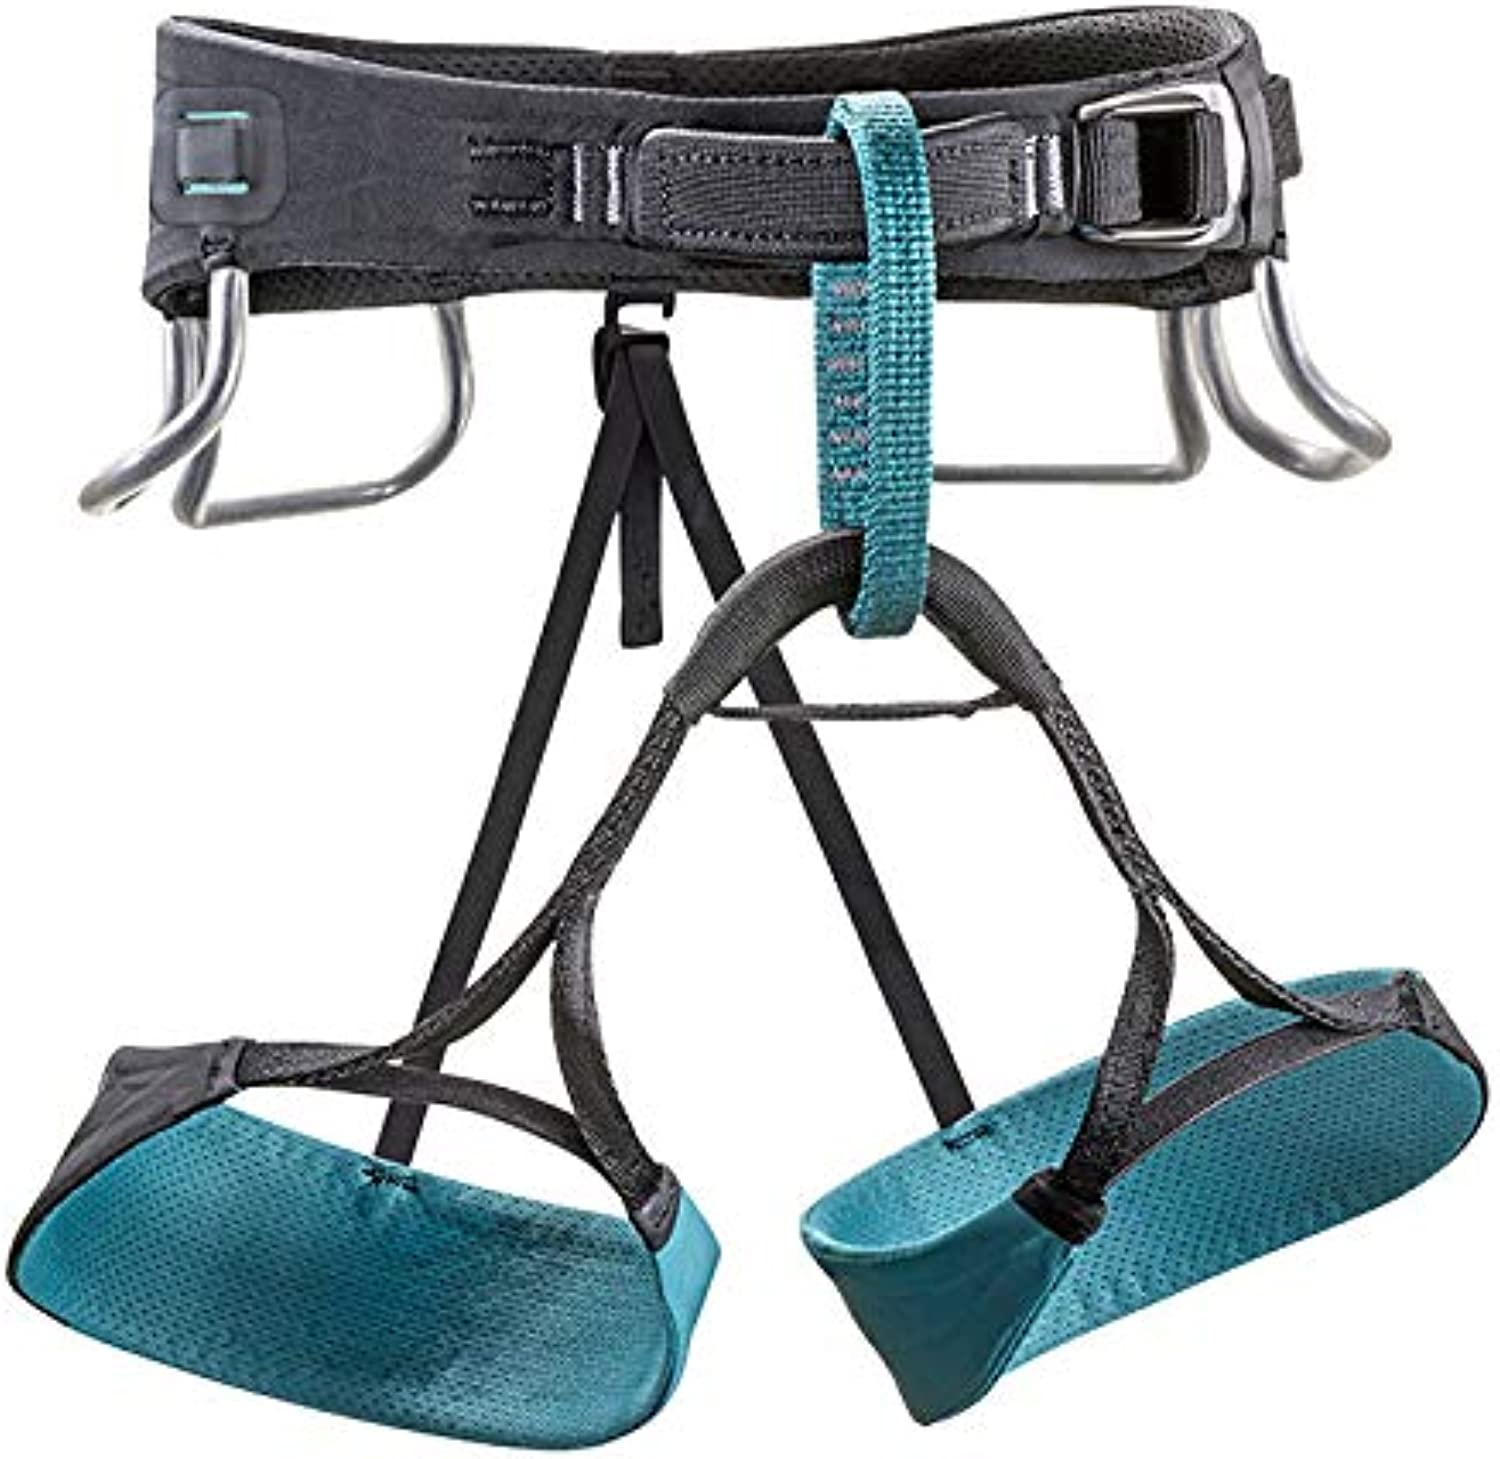 18 Spring and Summer BLACKDIAMOND Black Diamond Zone Women Climbing Light Exercise Belt 651086